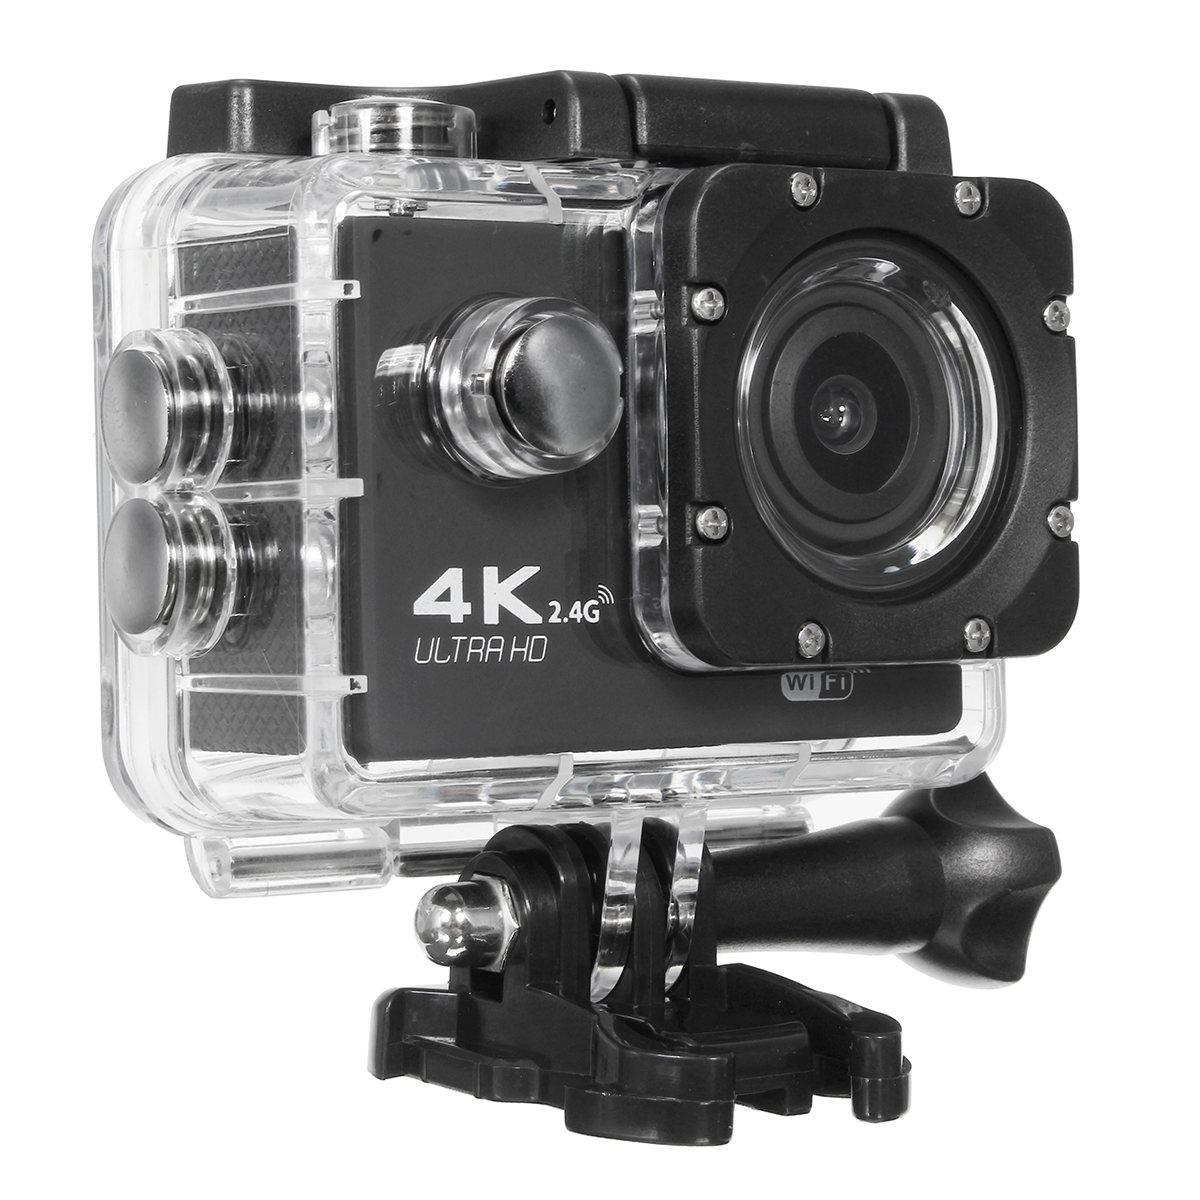 F60R Ultra HD 4K /30fps WiFi Action Camera 2.0 170D go Helmet Cam pro underwater waterproof Multi Color Sport Consumer Camera action camera h3r h3 ultra hd 4k 170d lens go dual screen camera pro waterproof 30m remote control sport camera